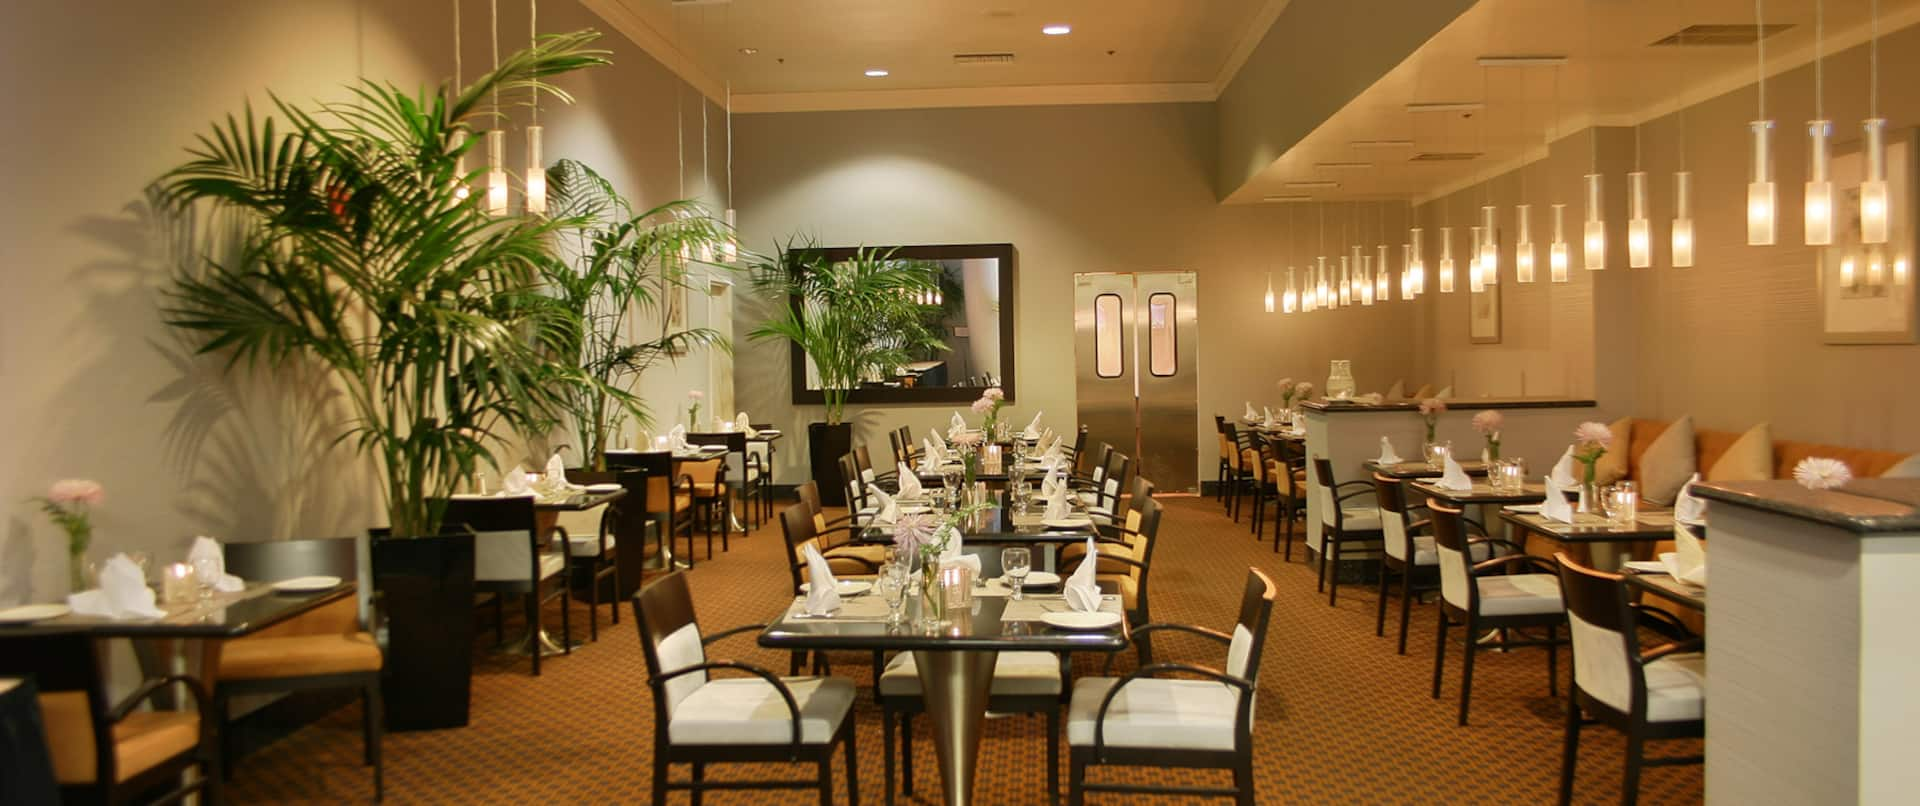 The Ariana Restaurant Dining Area